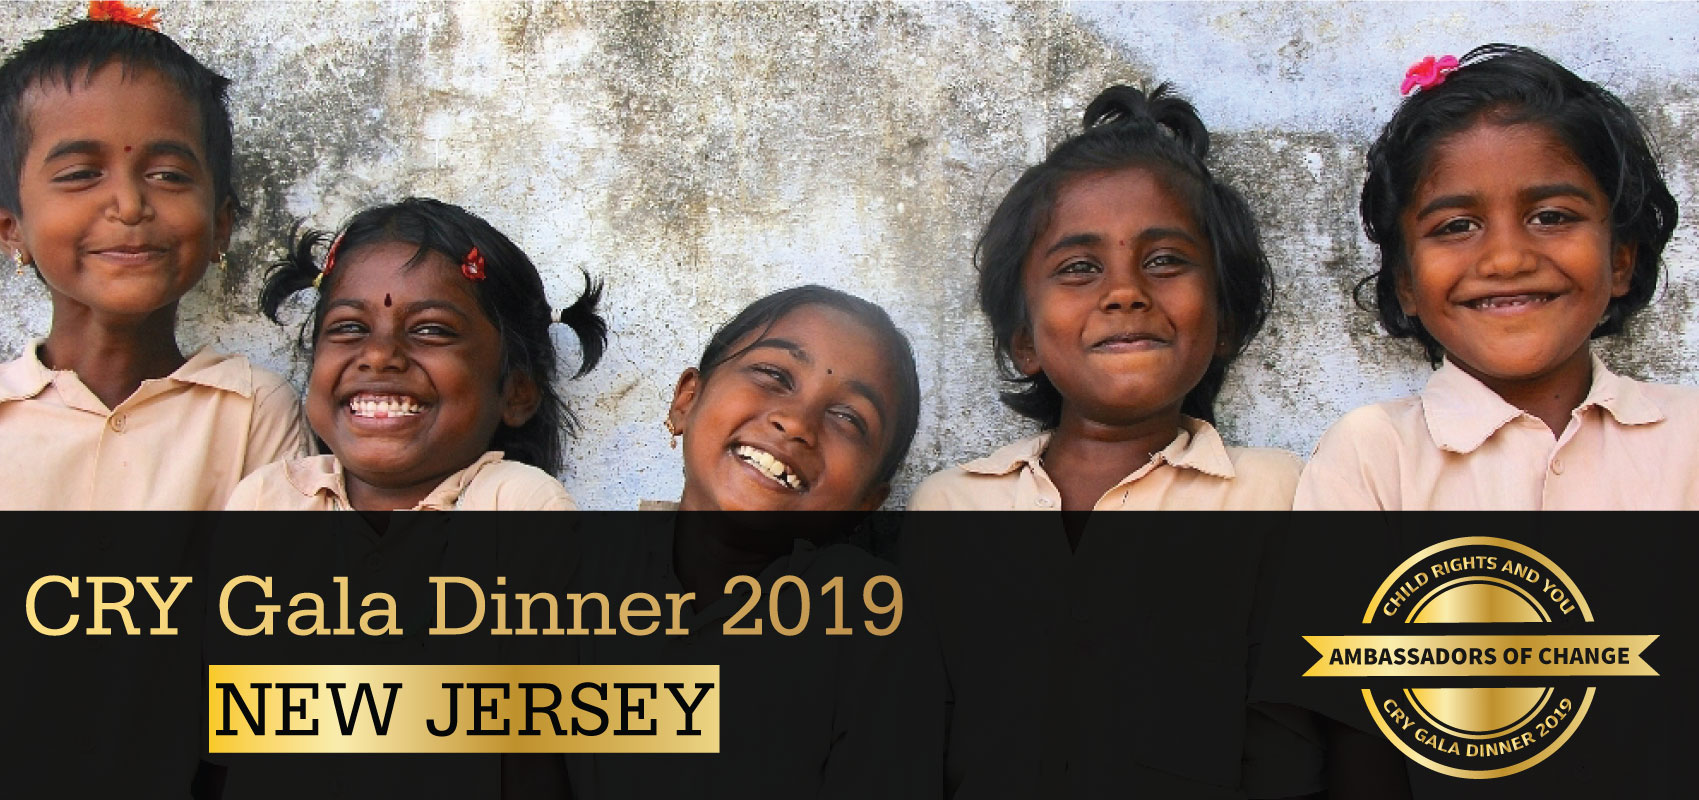 CRY Gala Dinner at New Jersey on Friday, March 16, 2019